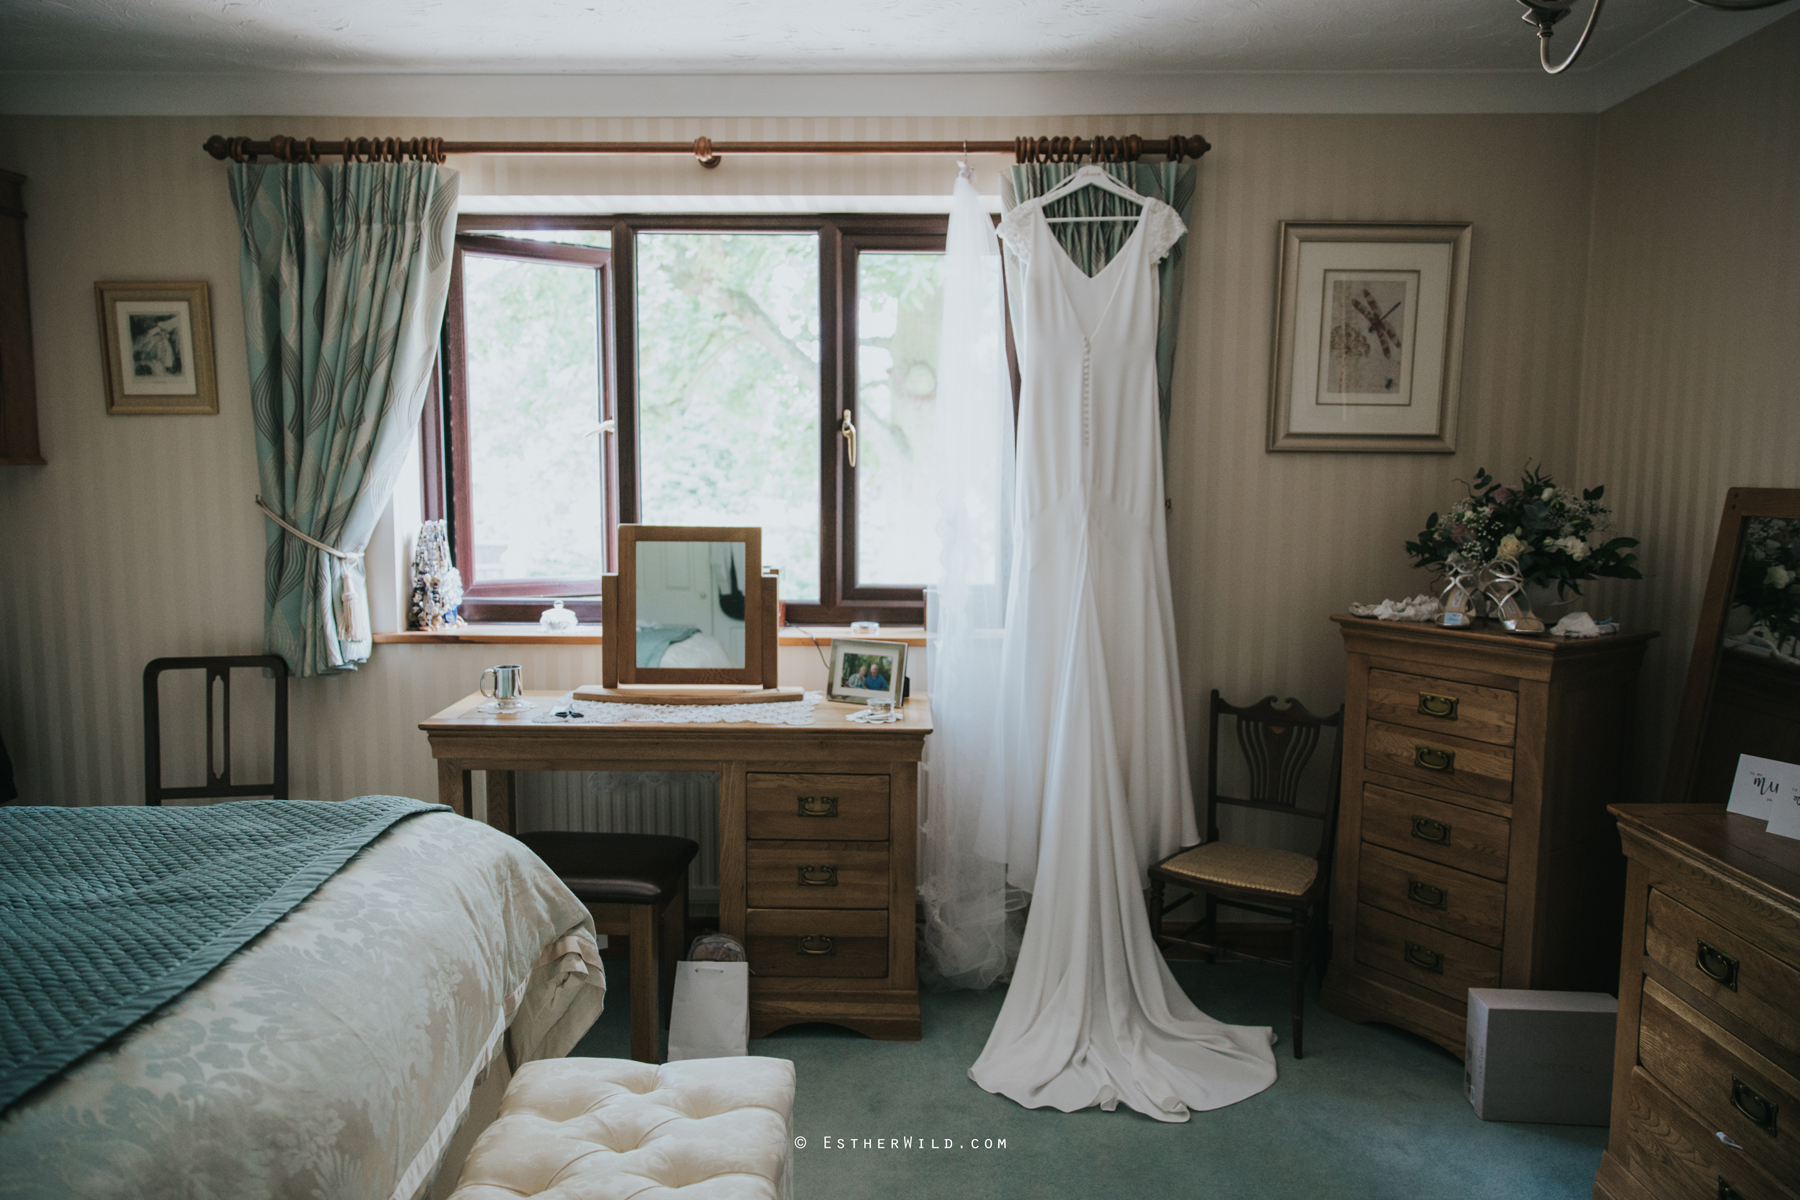 Wootton_Wedding_Copyright_Esther_Wild_Photographer_IMG_0053.jpg